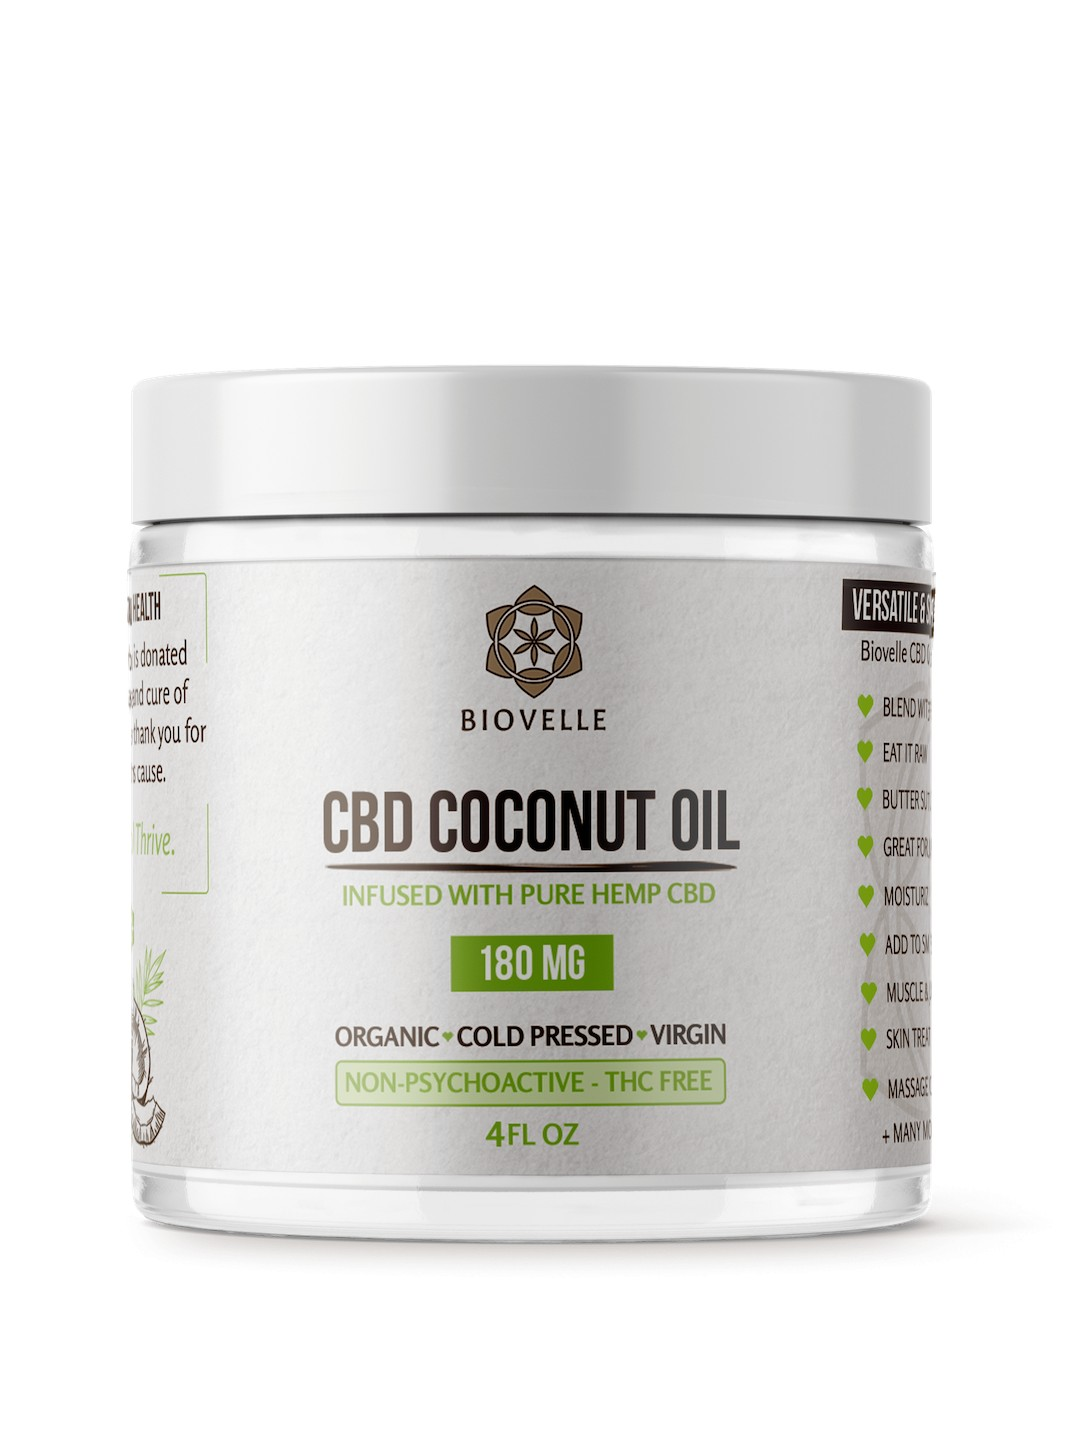 Jar Mockup 4oz copy min - CBD Coconut Oil 4oz